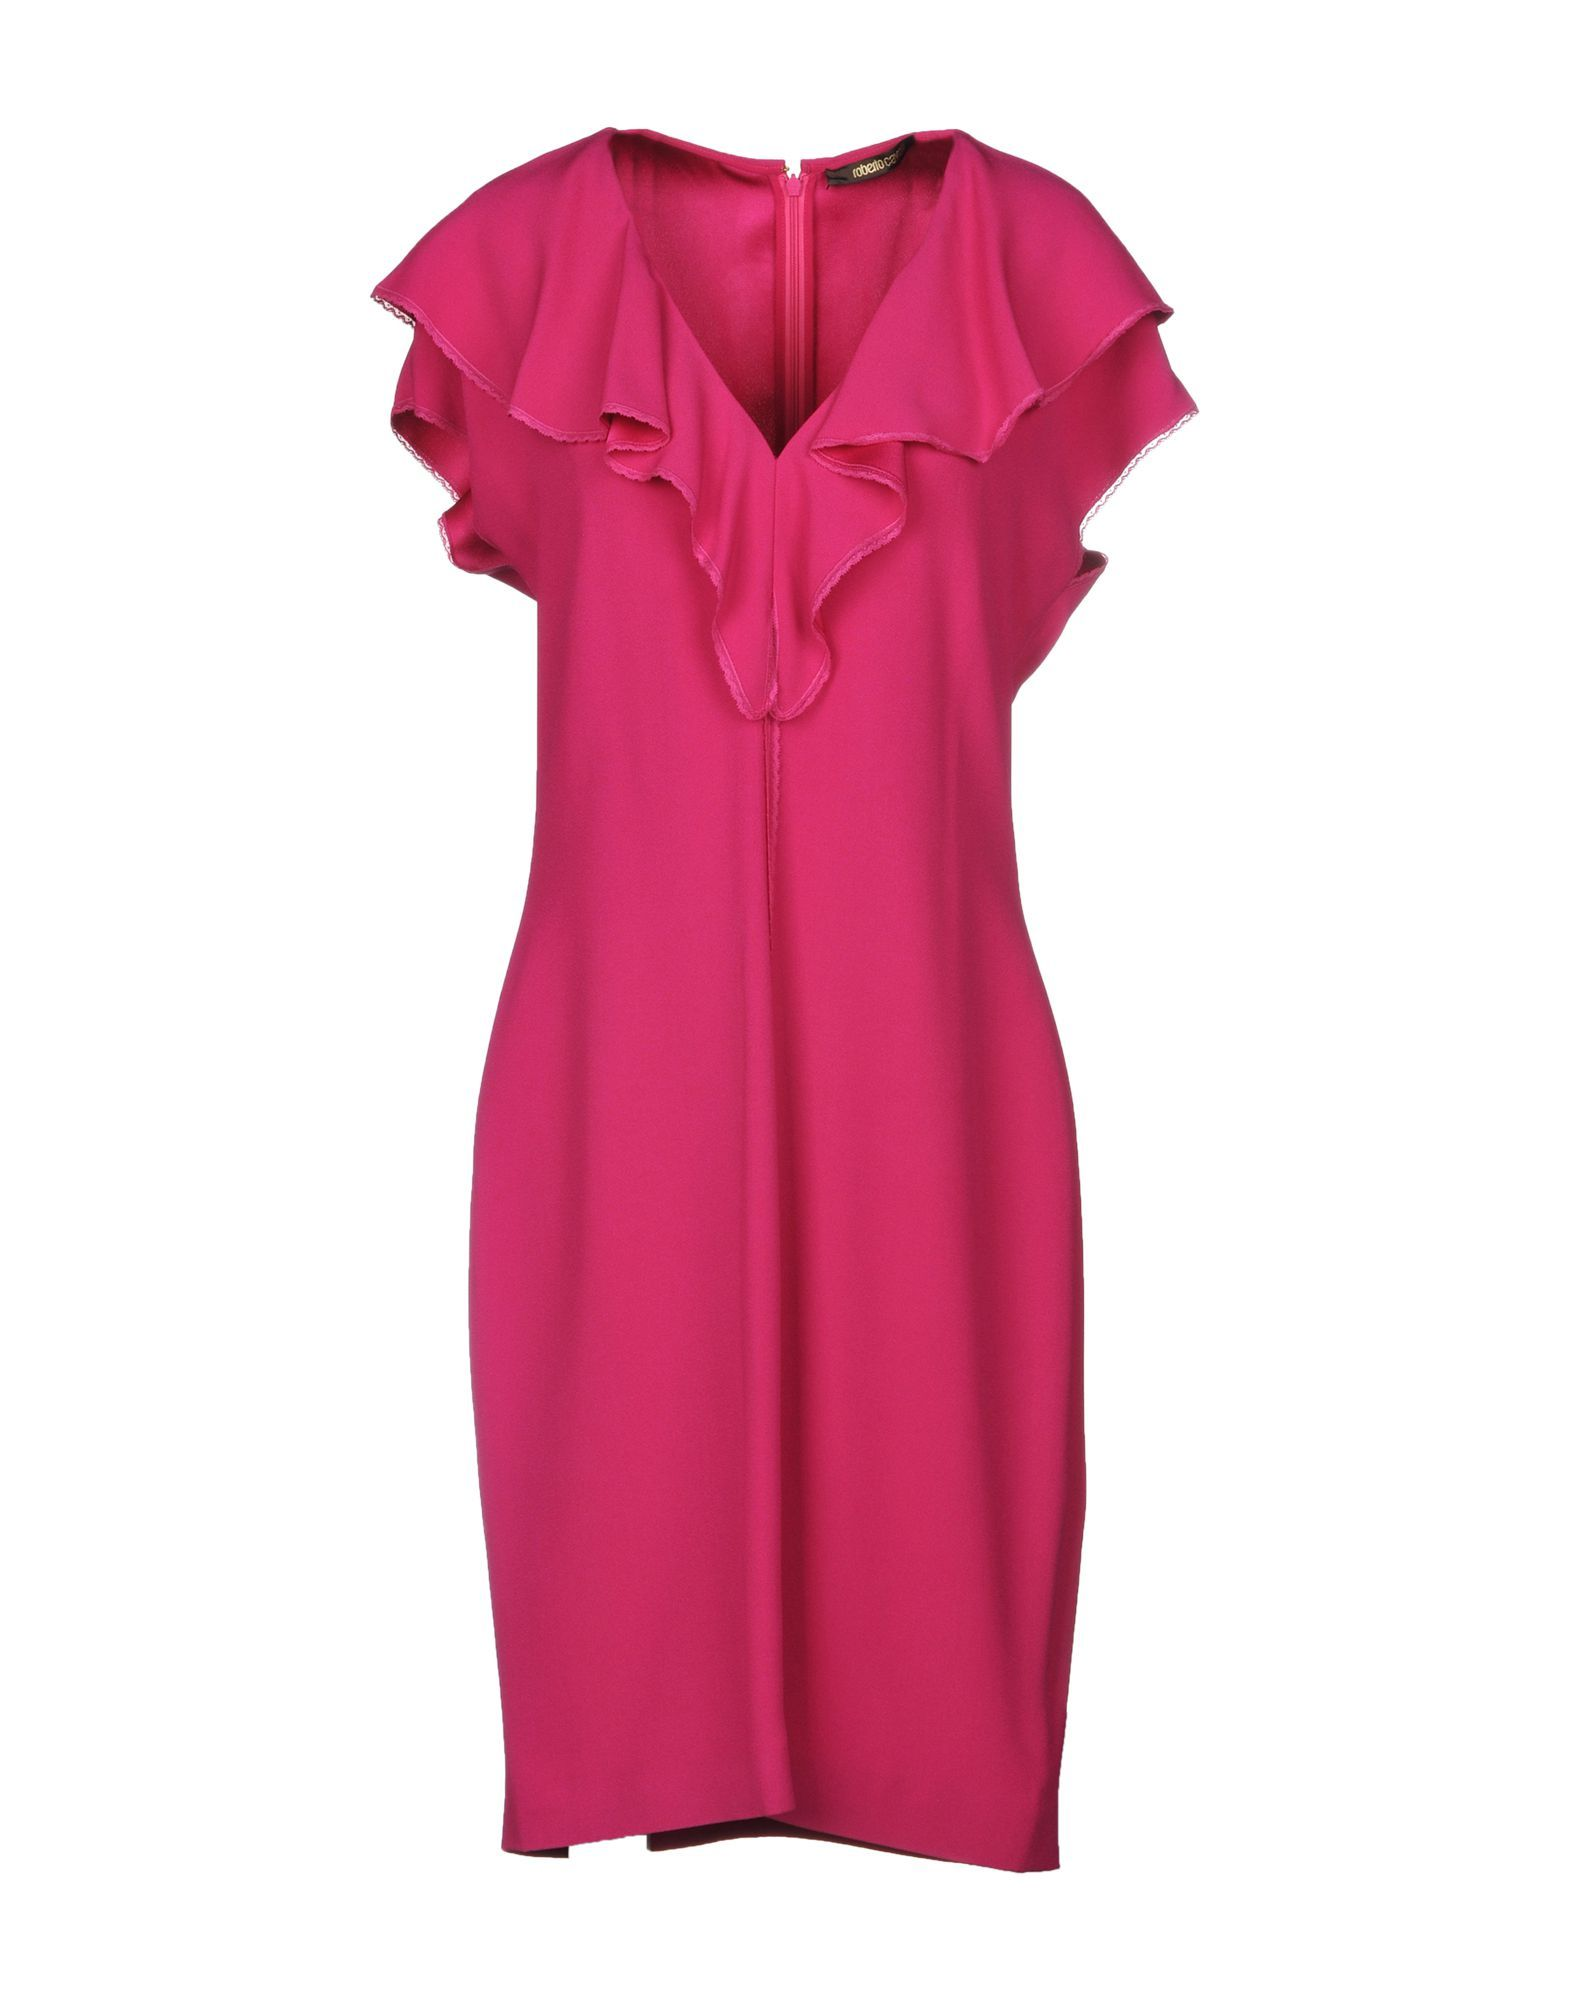 Roberto Cavalli Fuchsia Dress